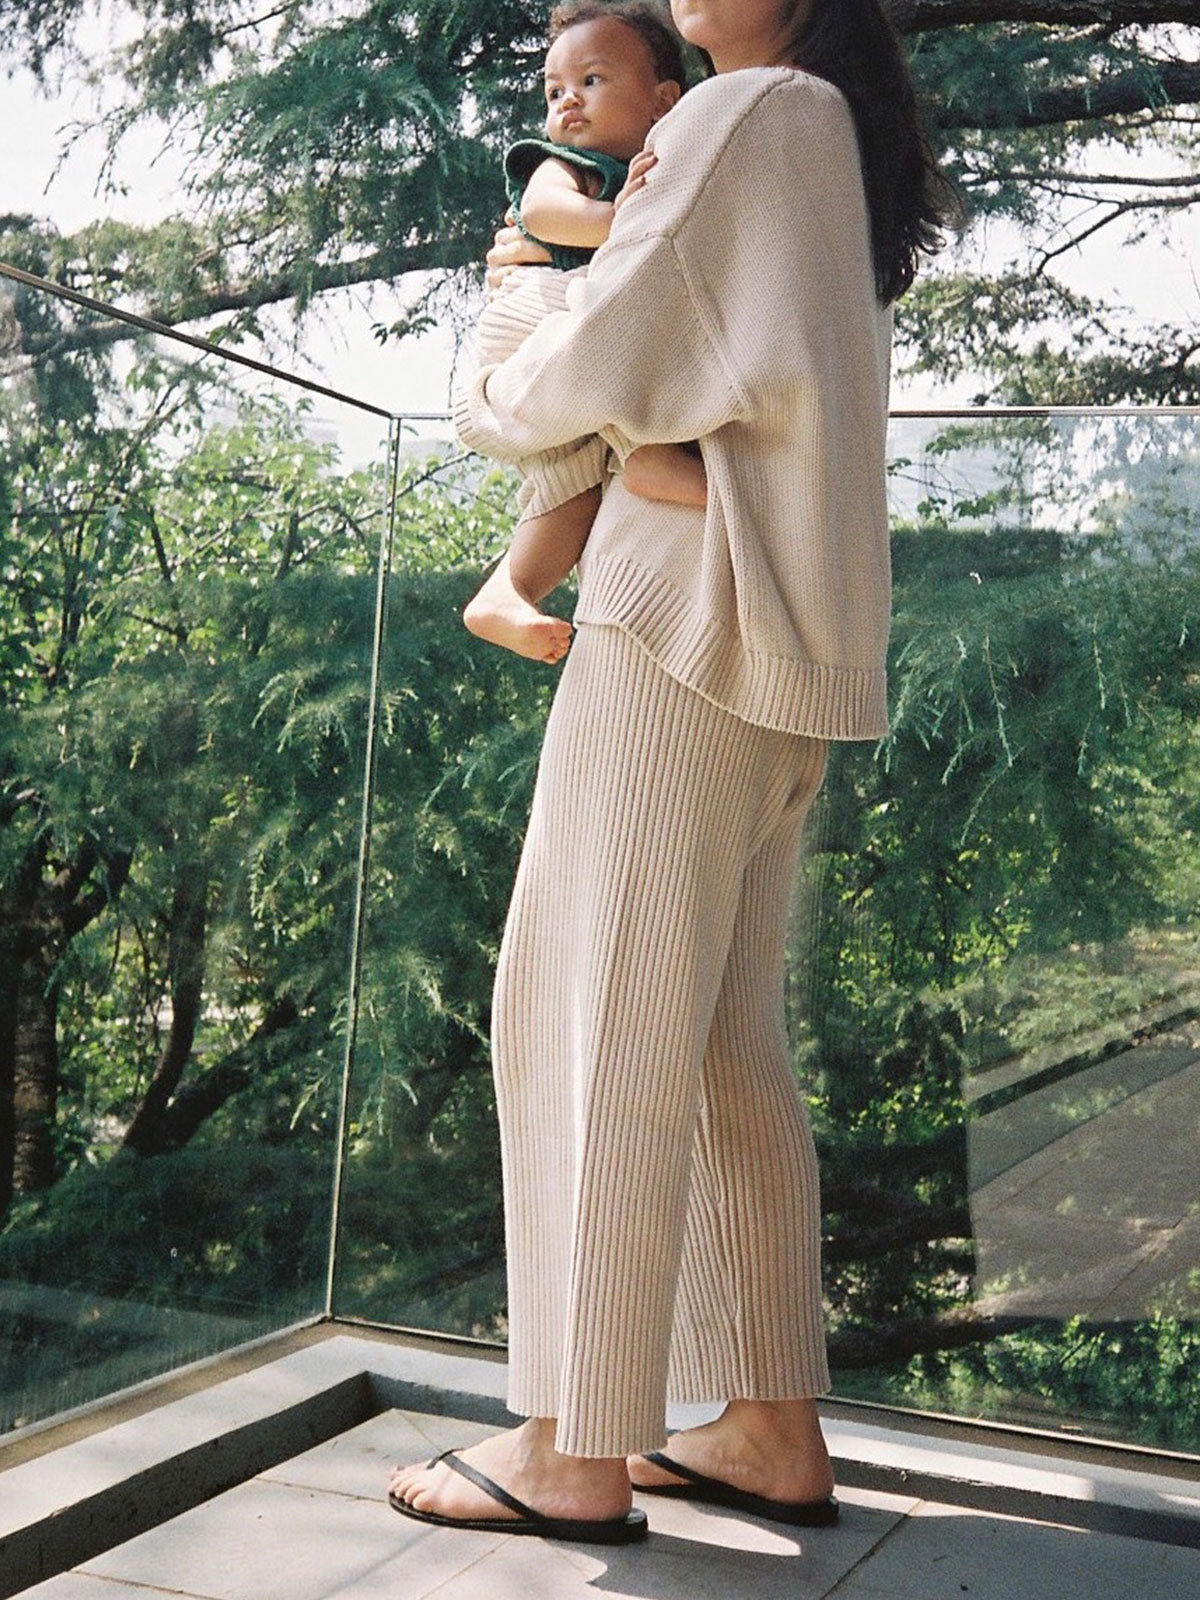 Natural Knitwear for Women and Children, Organic, Sustainable, New Zealand